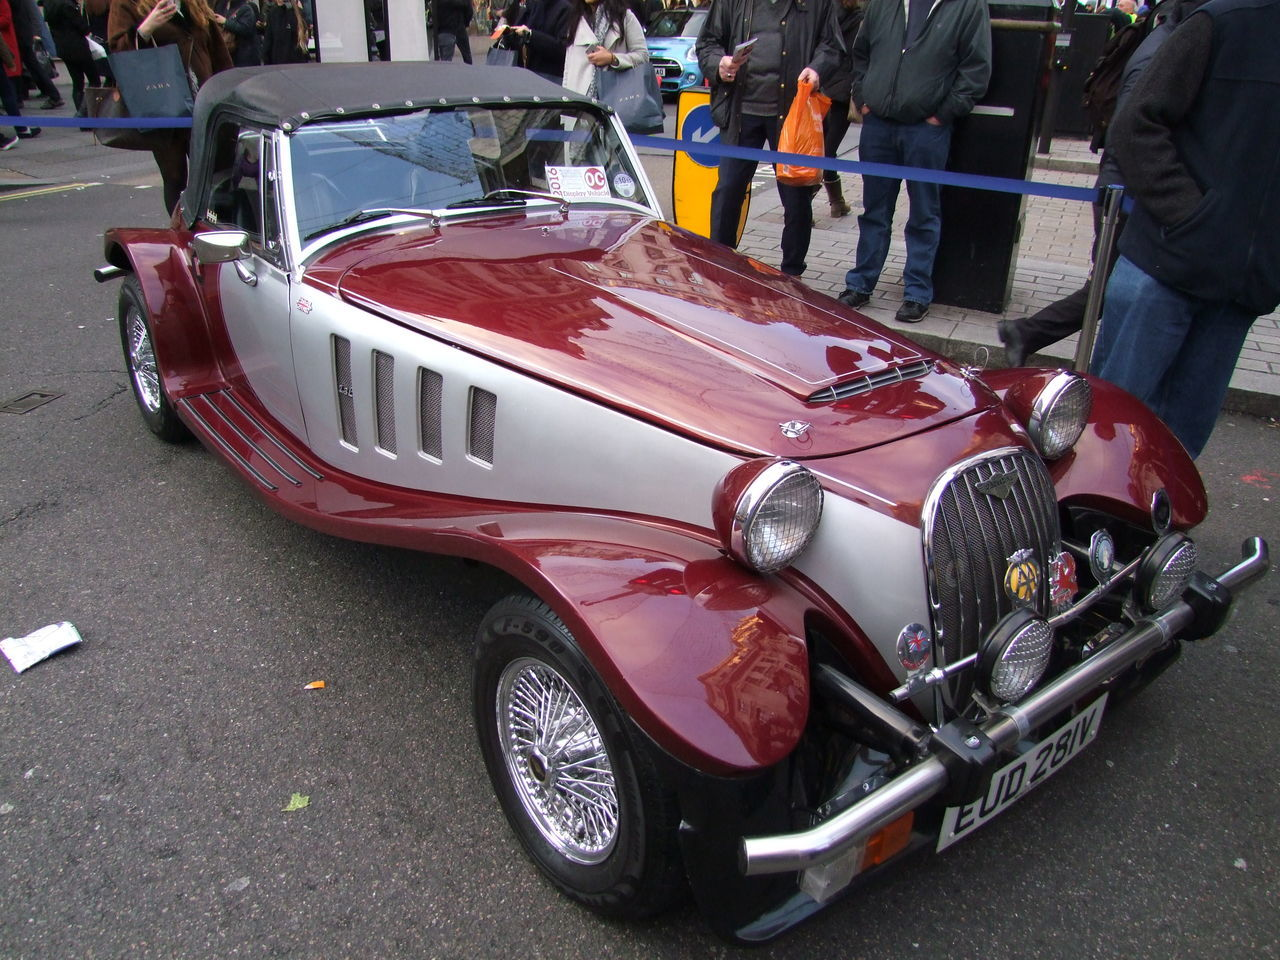 Morgan Car Capital City Car City Composition Convertible Car Full Frame Fun GB Grey And Maroon Colour London London To Brighton Vintage Car Rally Mode Of Transport Modern Cars Morgan No People On Display Outdoor Photography Racing Car Rally Car Reflections Soft Top Sports Car Uk